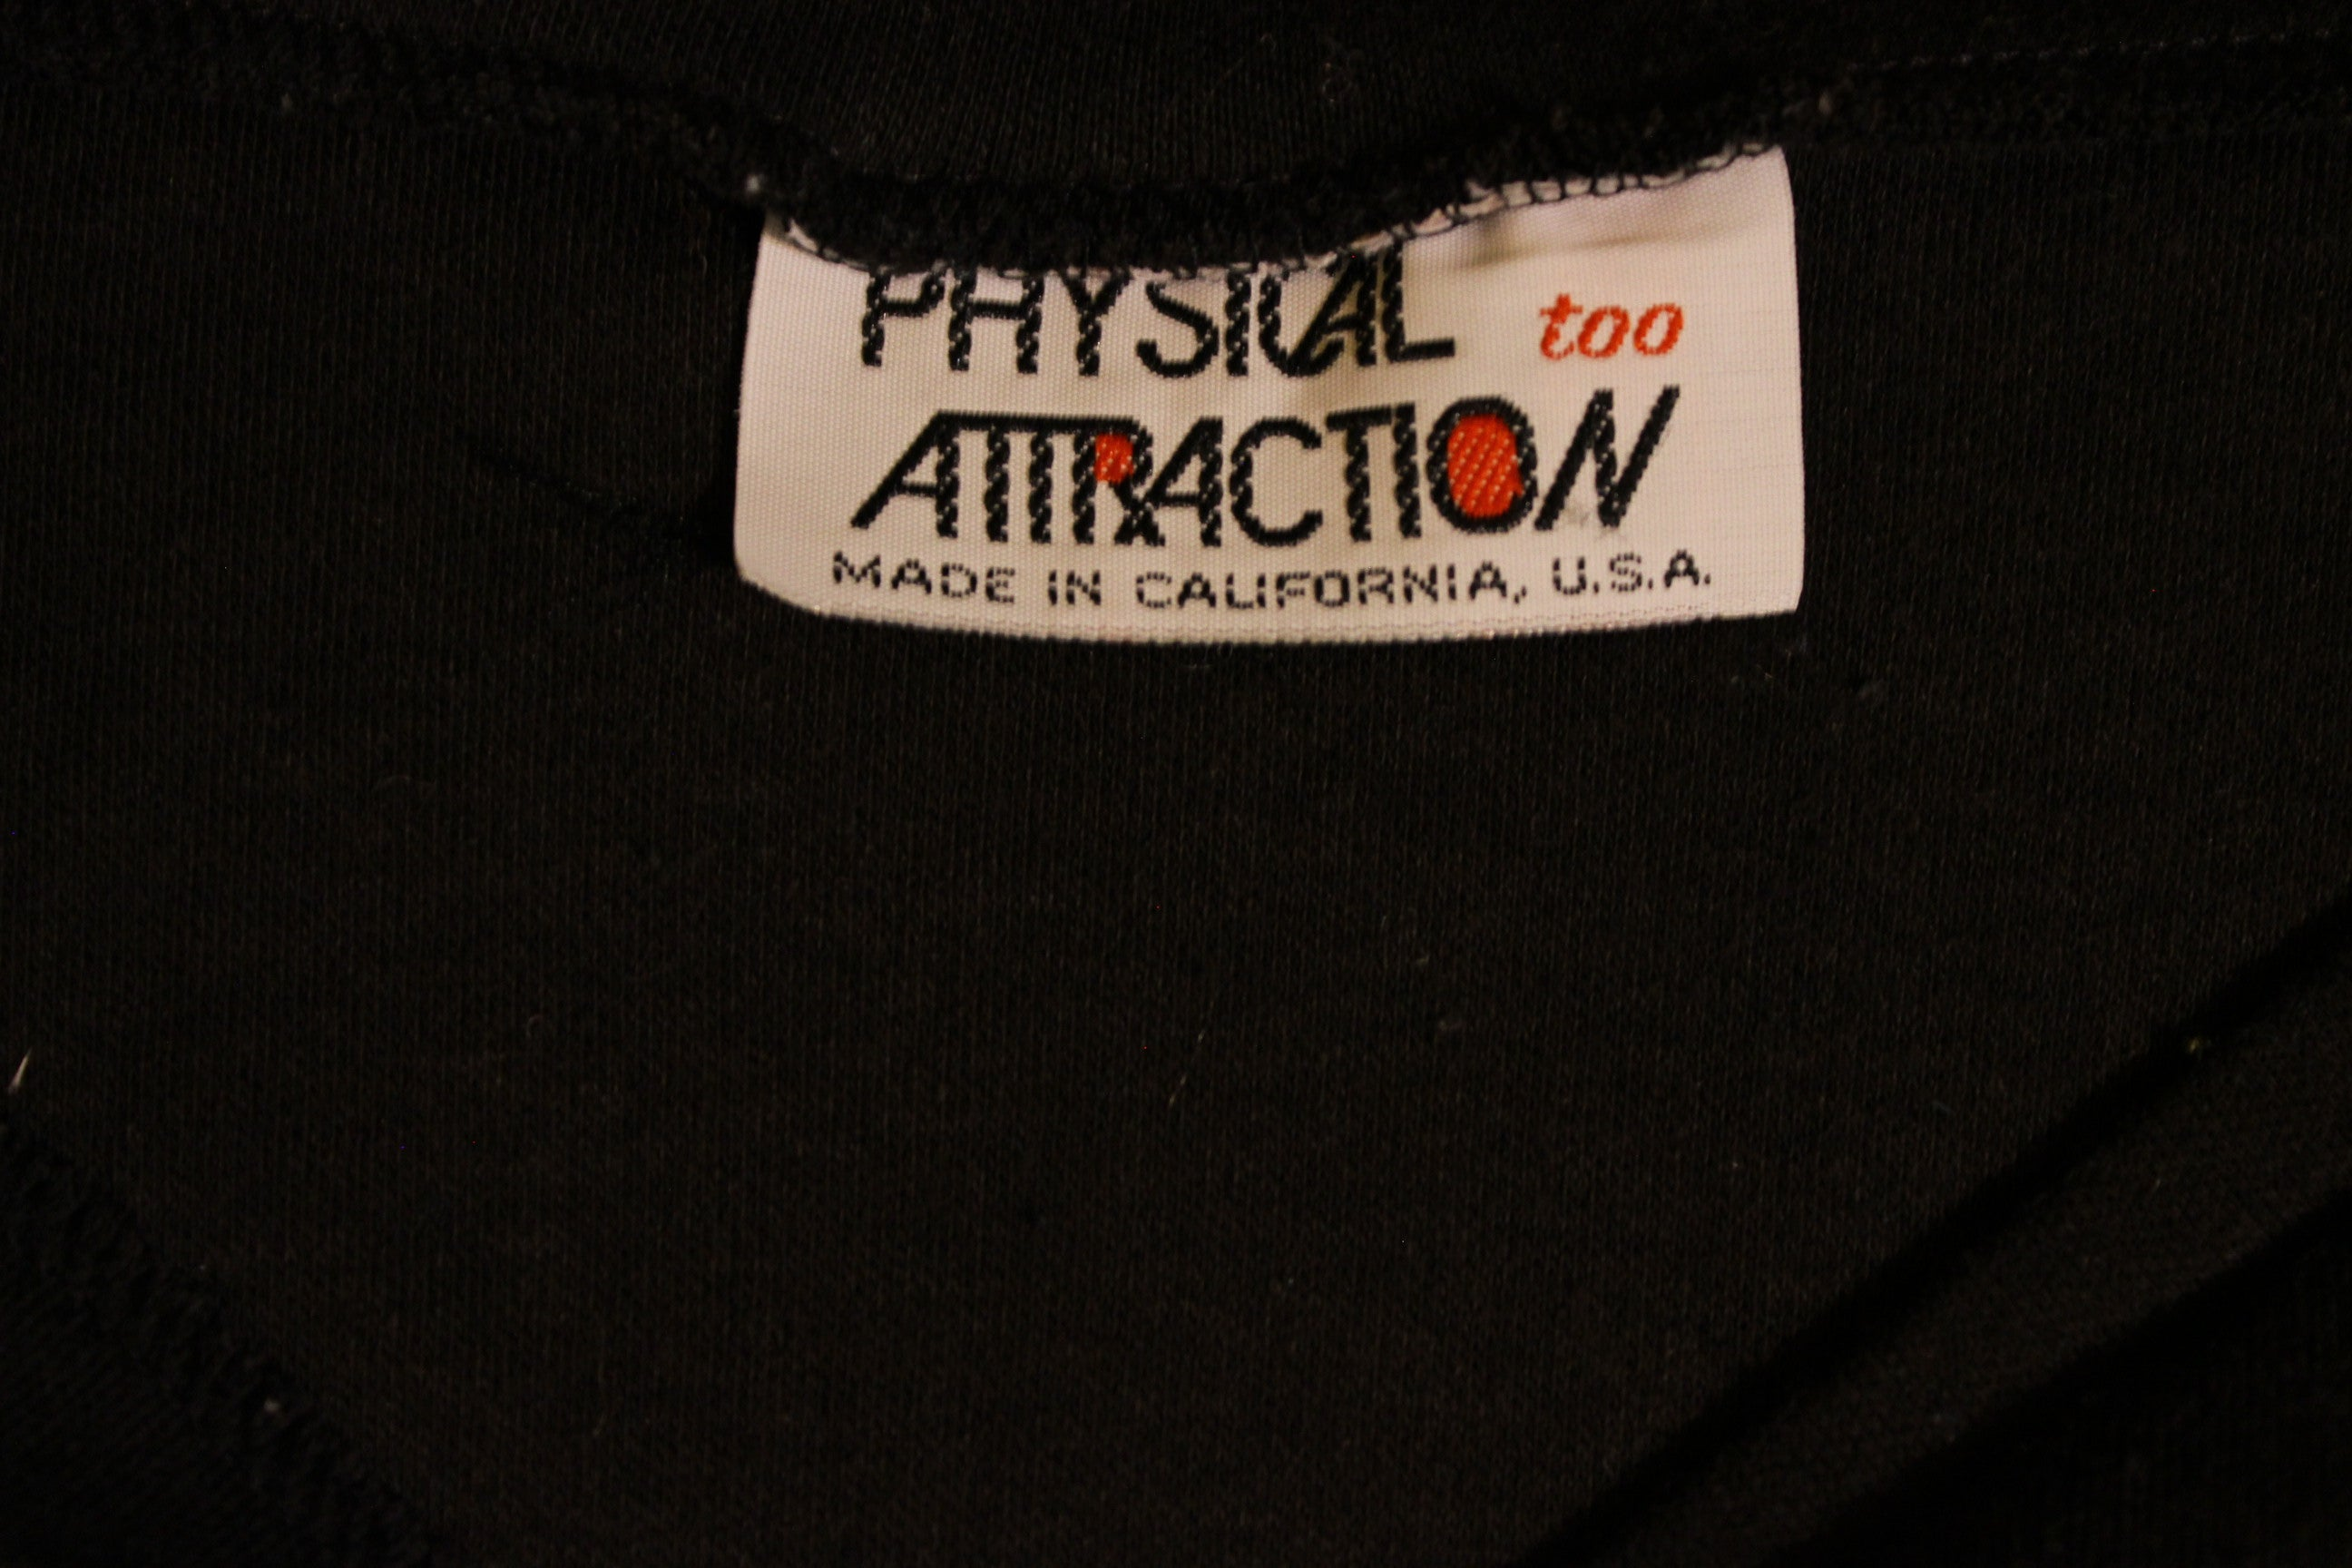 Physical Attraction Too 1980's 1970's Vintage Black Sleevless Summer Shirt.